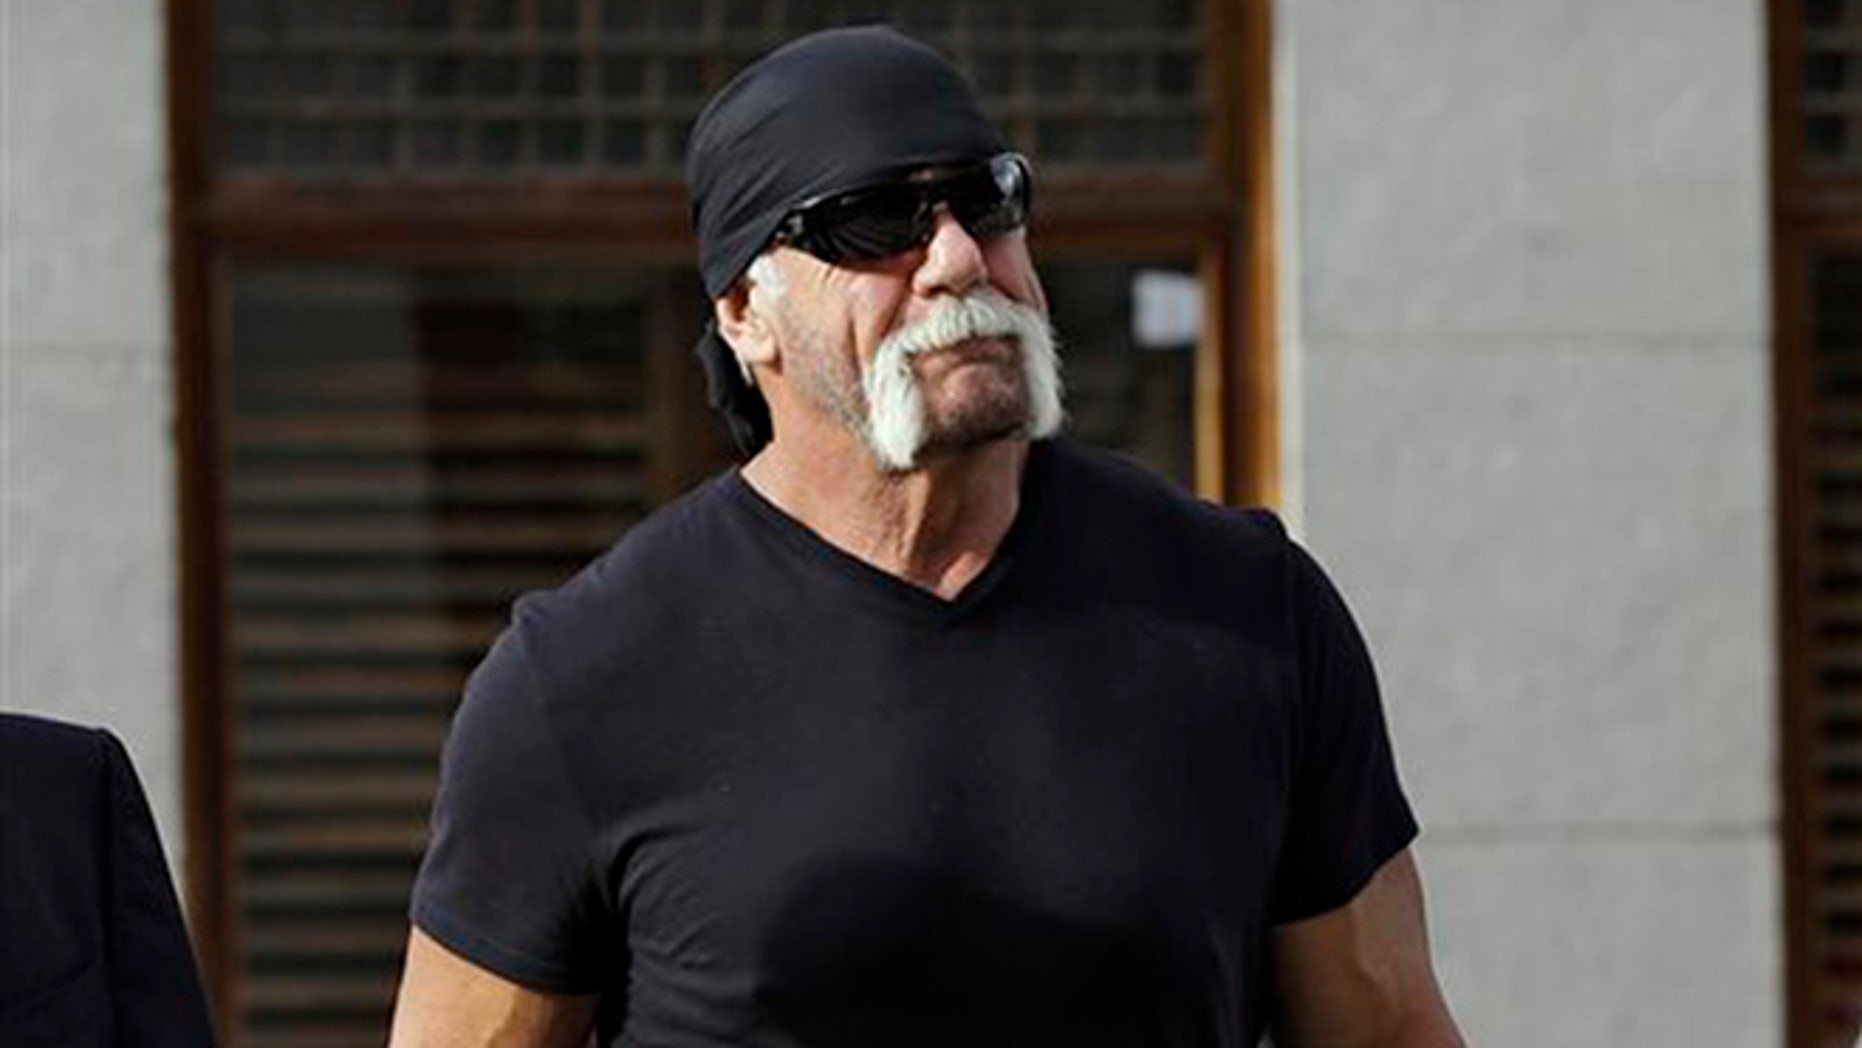 In this Oct. 15, 2012 file photo, former professional wrestler Hulk Hogan, whose real name is Terry Bollea, arrives for a news conference at the United States Courthouse in Tampa, Fla.